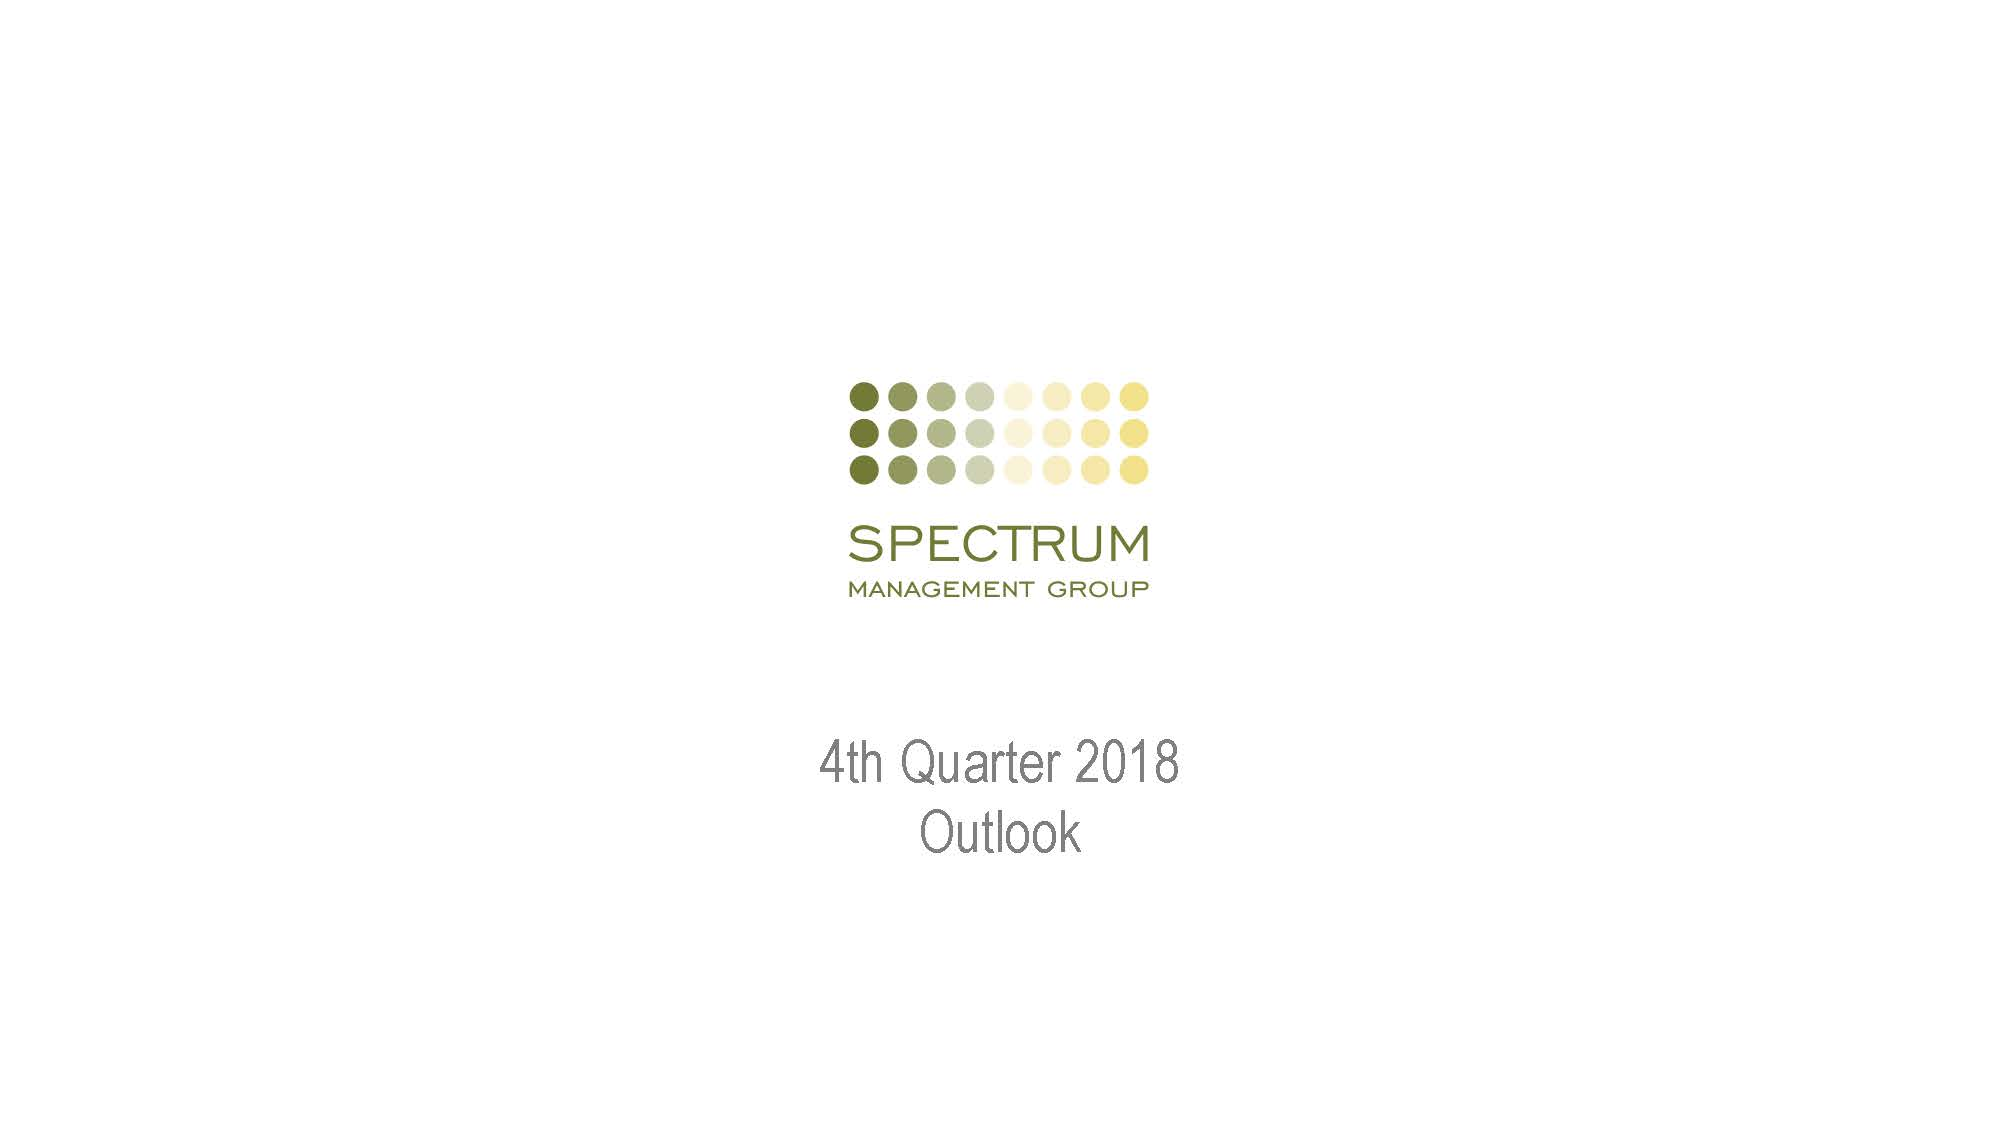 Q4 2018 Spectrum Management Group Outlook